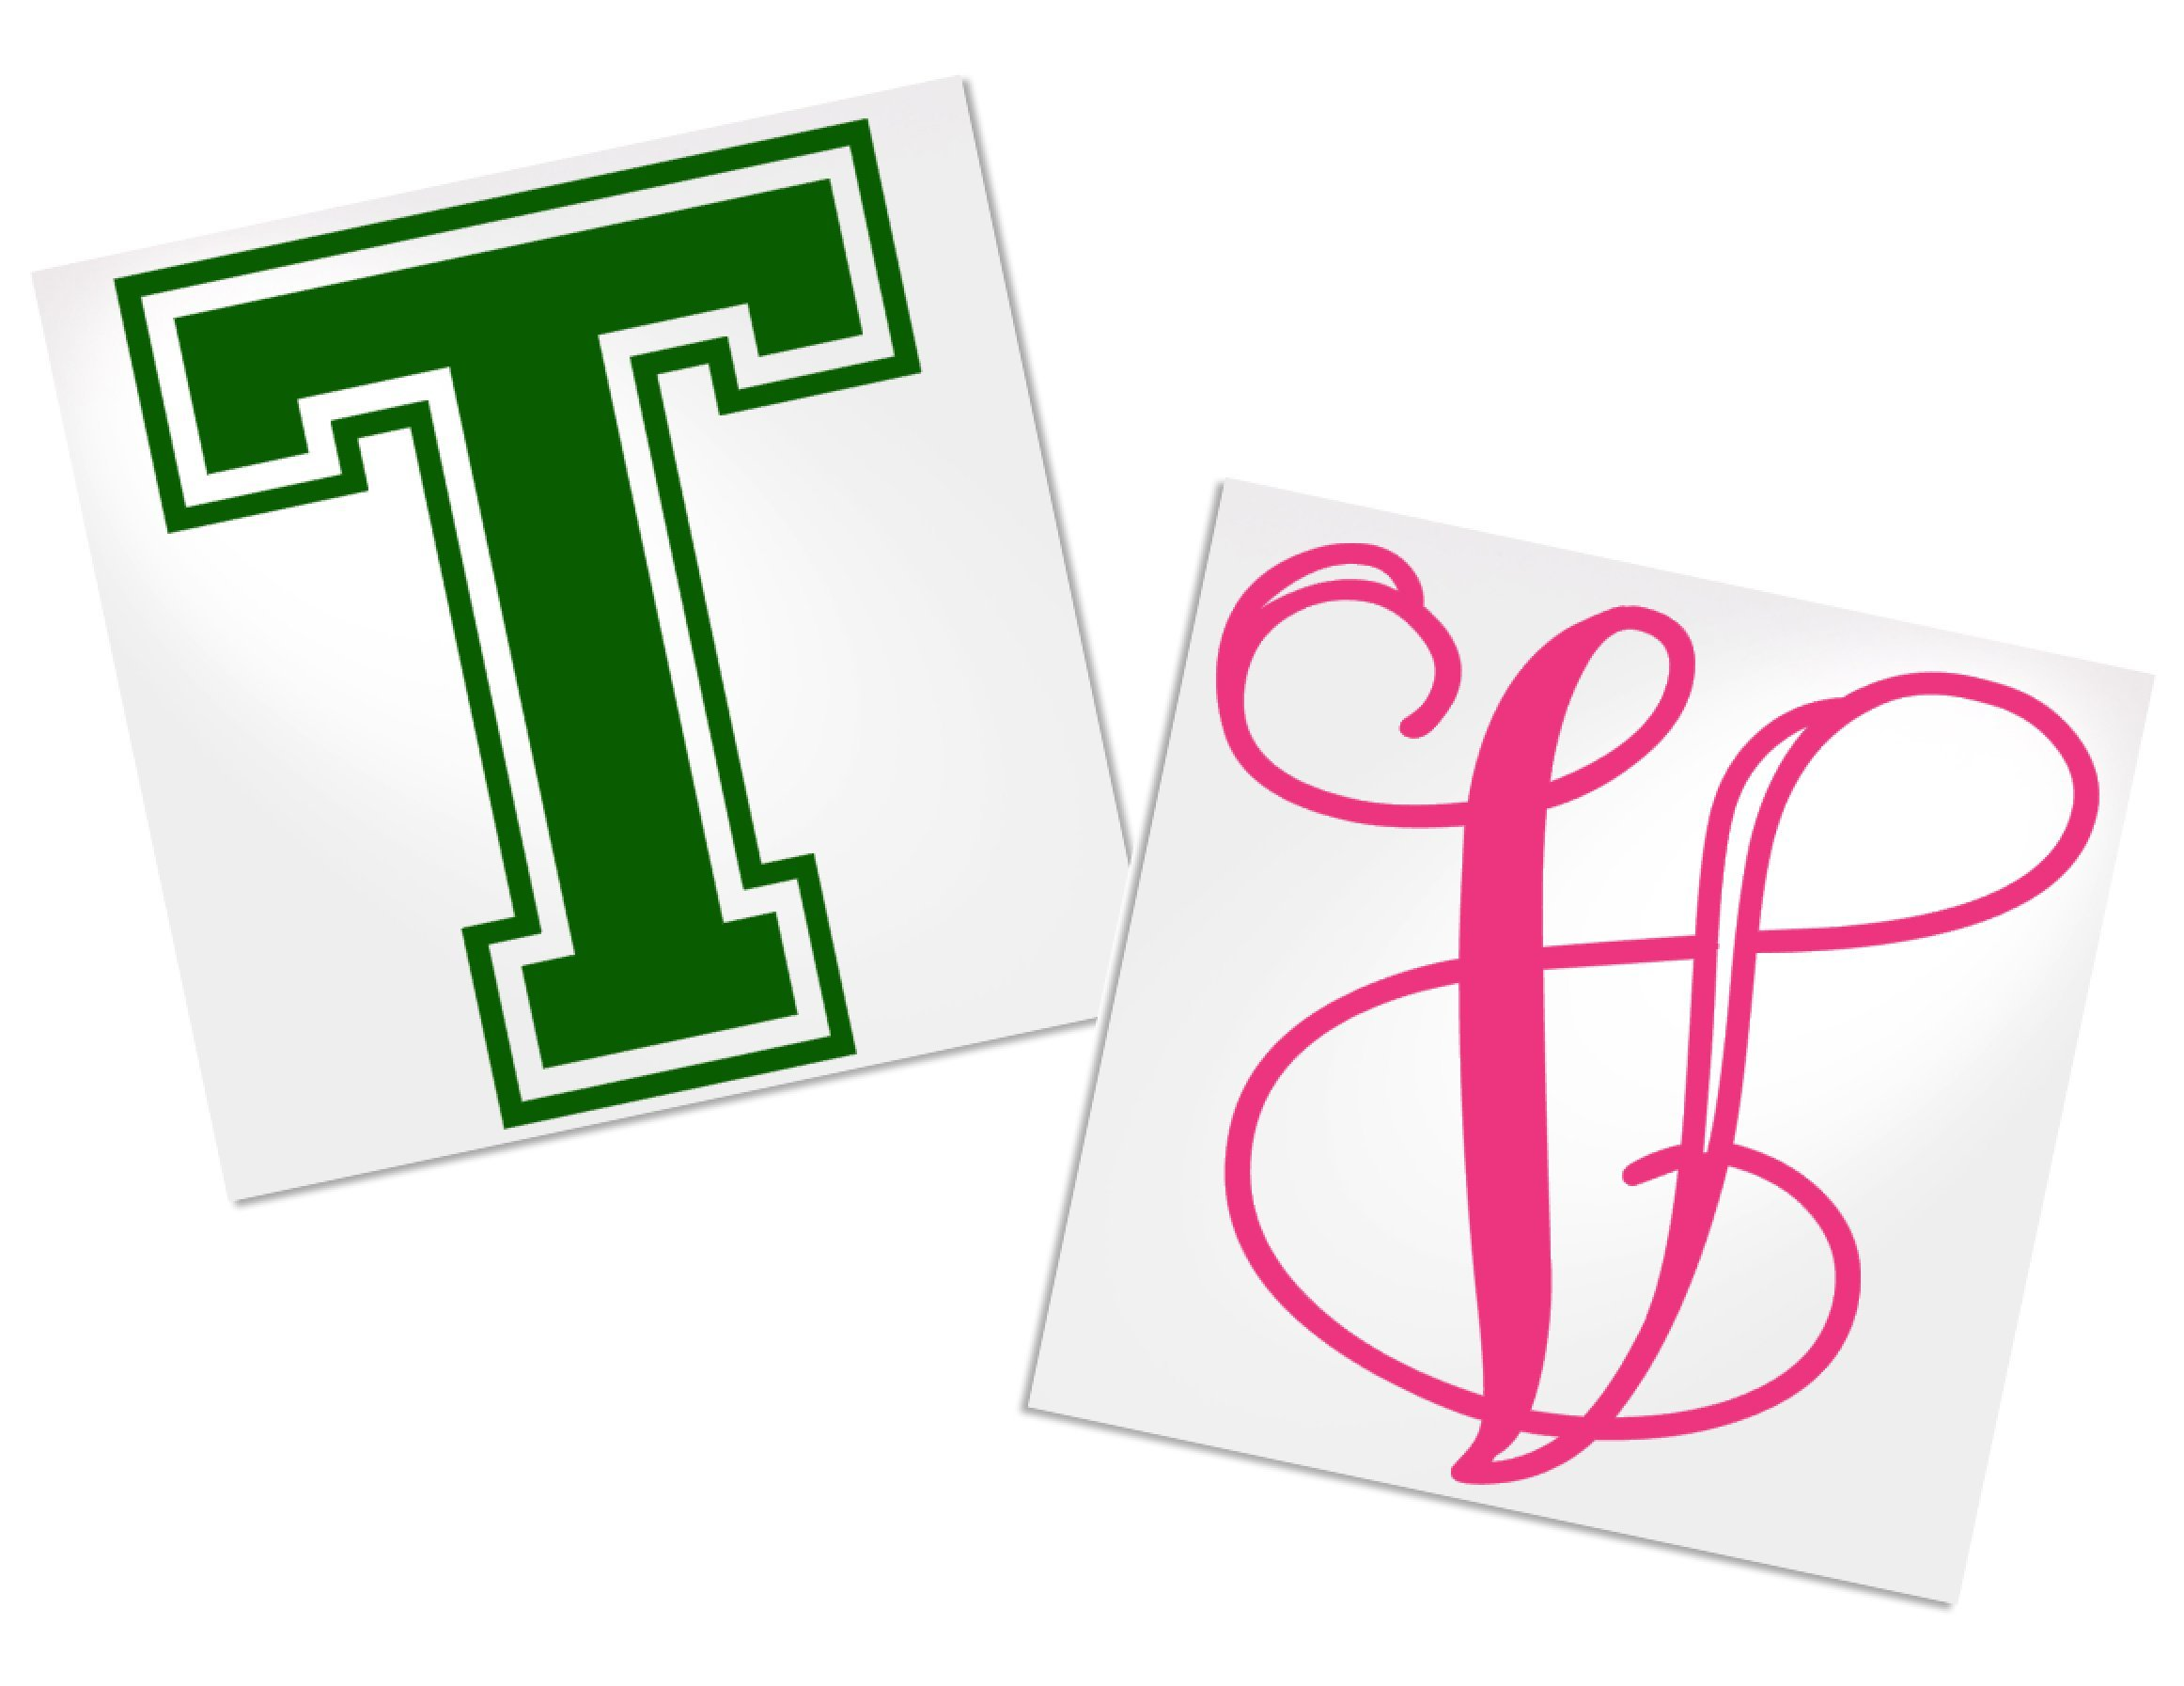 Single Letter Decal for Tumbler, Your Choice of Color & Style | Decals by ADavis by Decals by ADavis (Image #1)